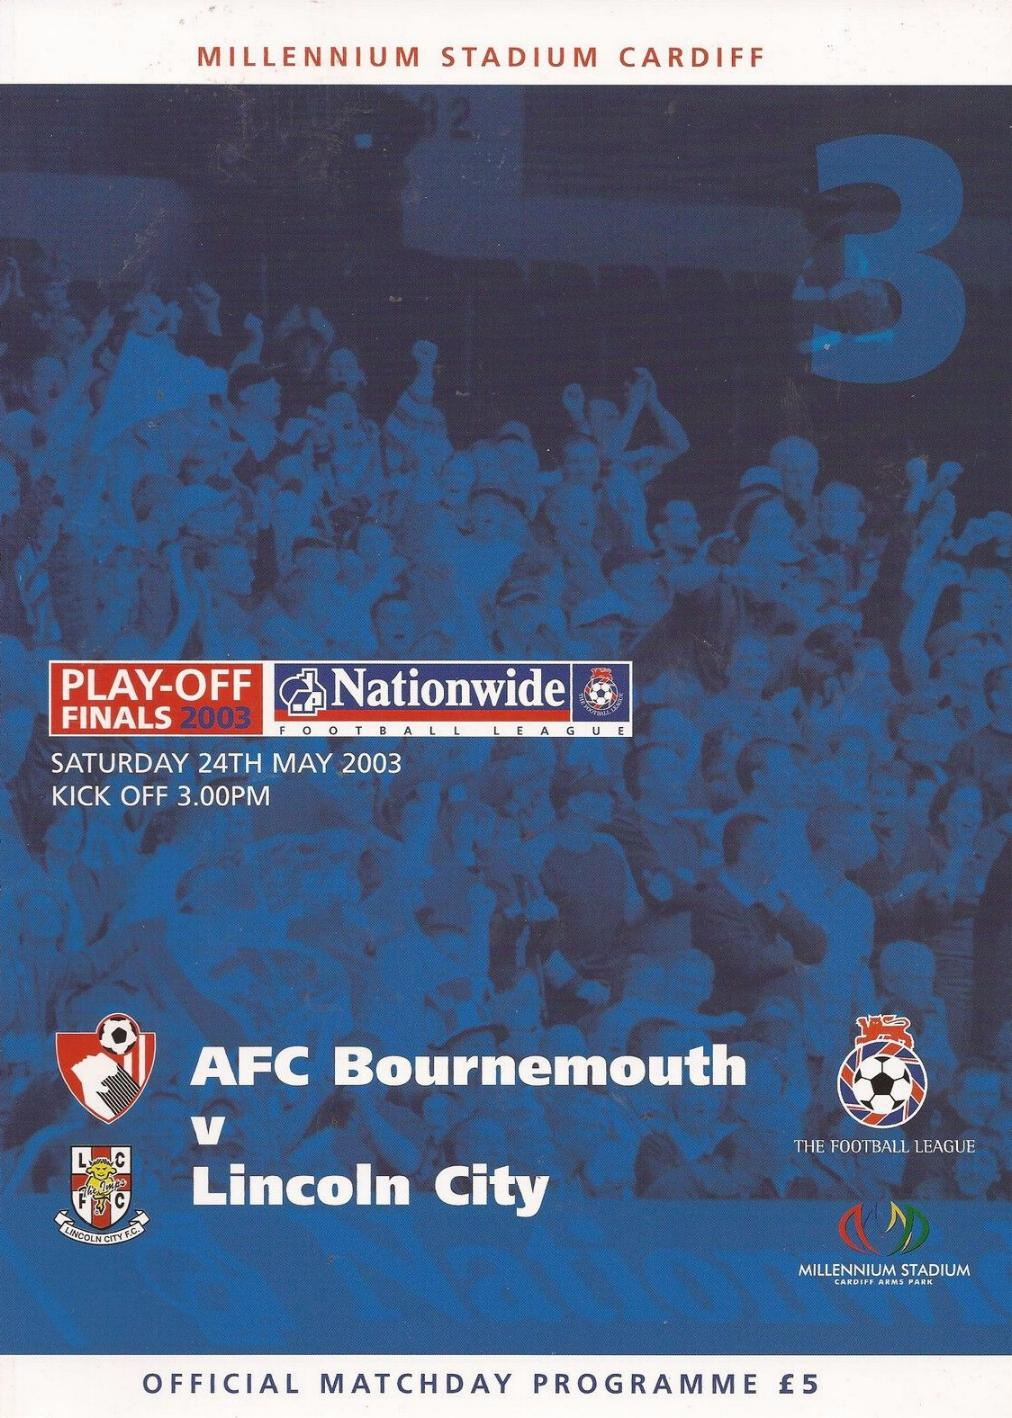 2003 DVISION 3 PLAY-OFF FINAL - BOURNEMOUTH v LINCOLN CITY